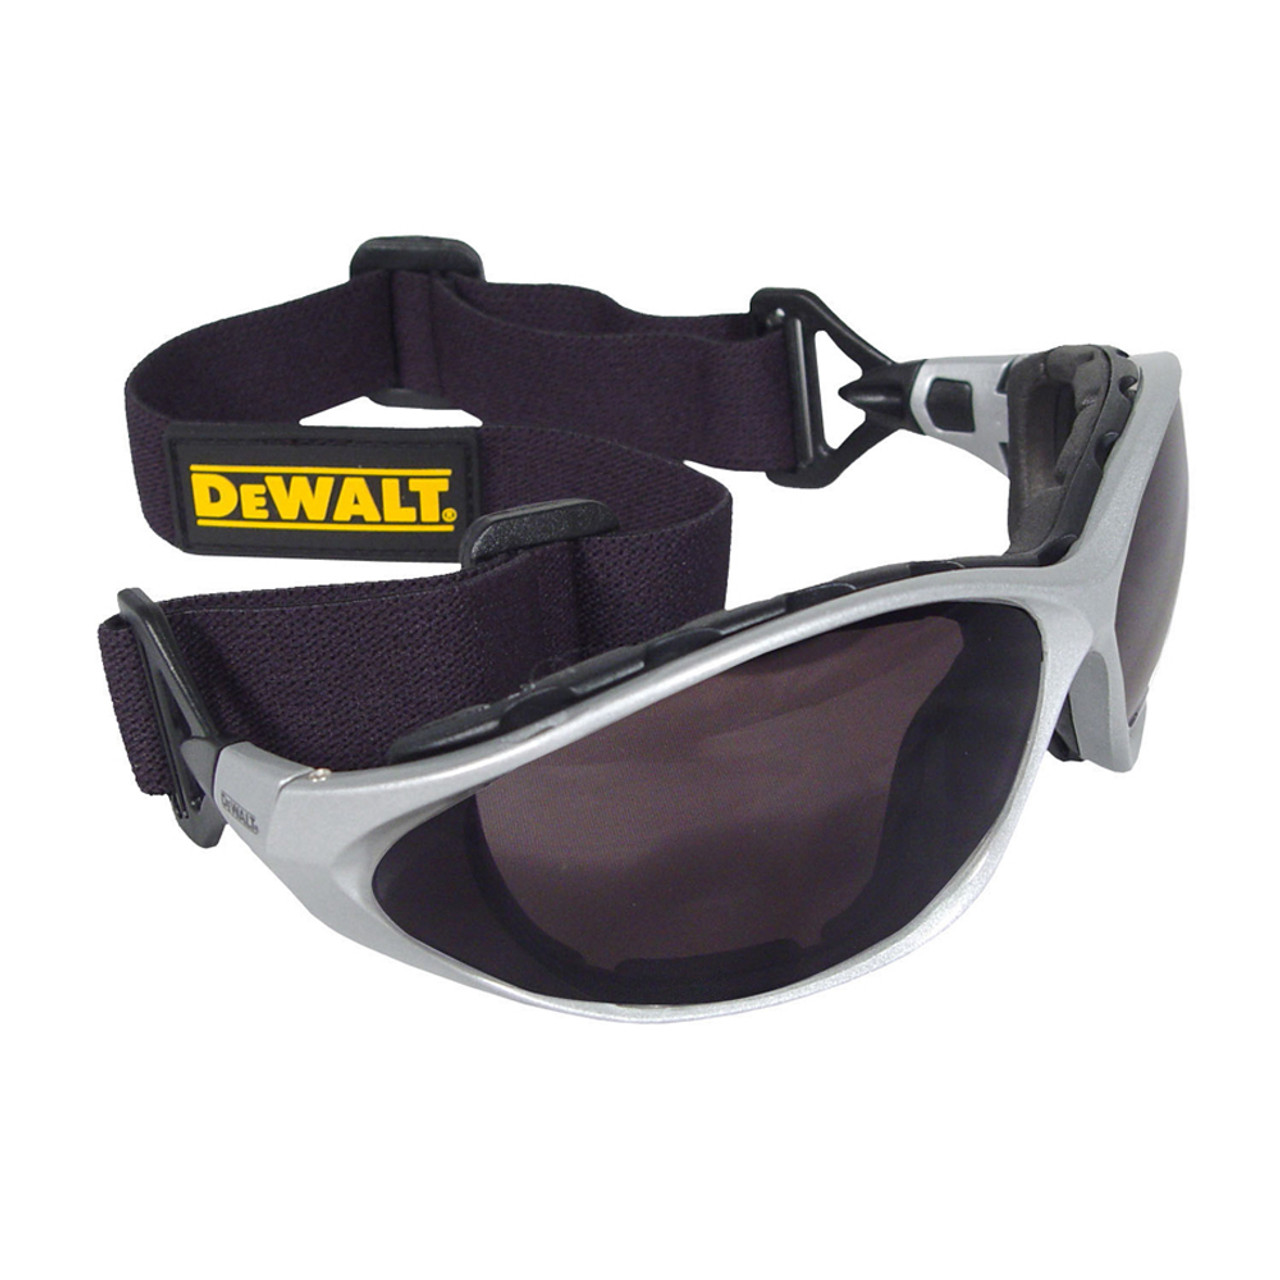 0b0140571a42 DeWalt grey full frame safety glasses with black lenses, full foam padding  and black convertible